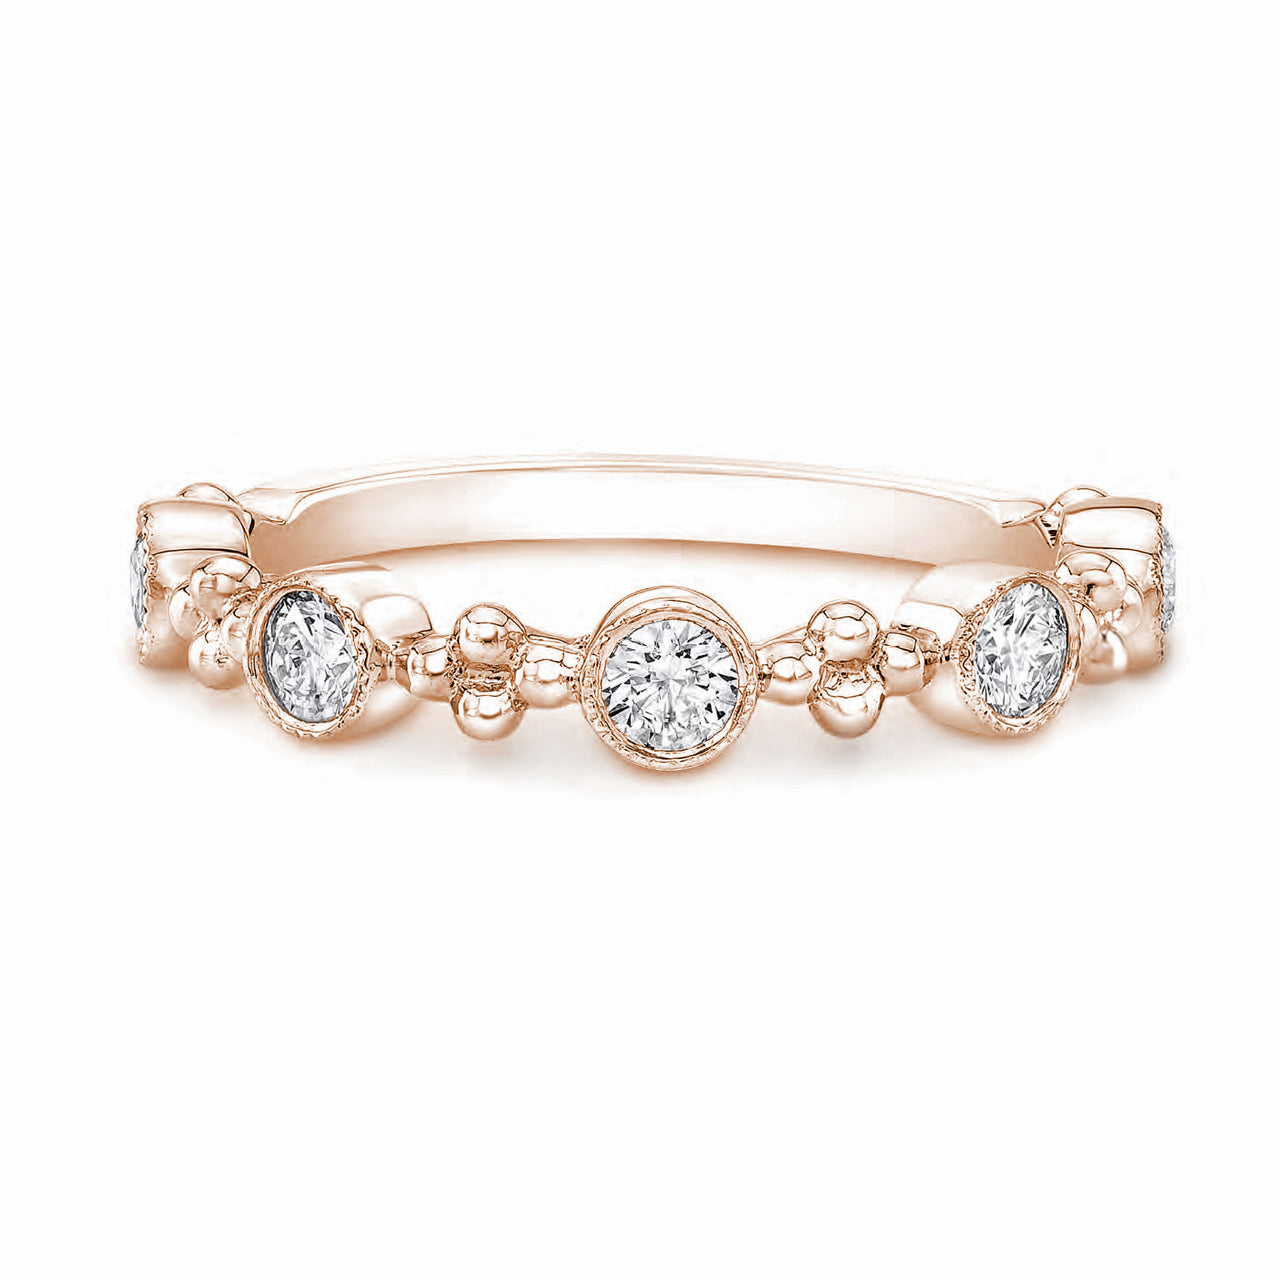 Forevermark Tribute™ Collection 18K Rose Gold Diamond Bezel Multi-Stone Stacking Ring